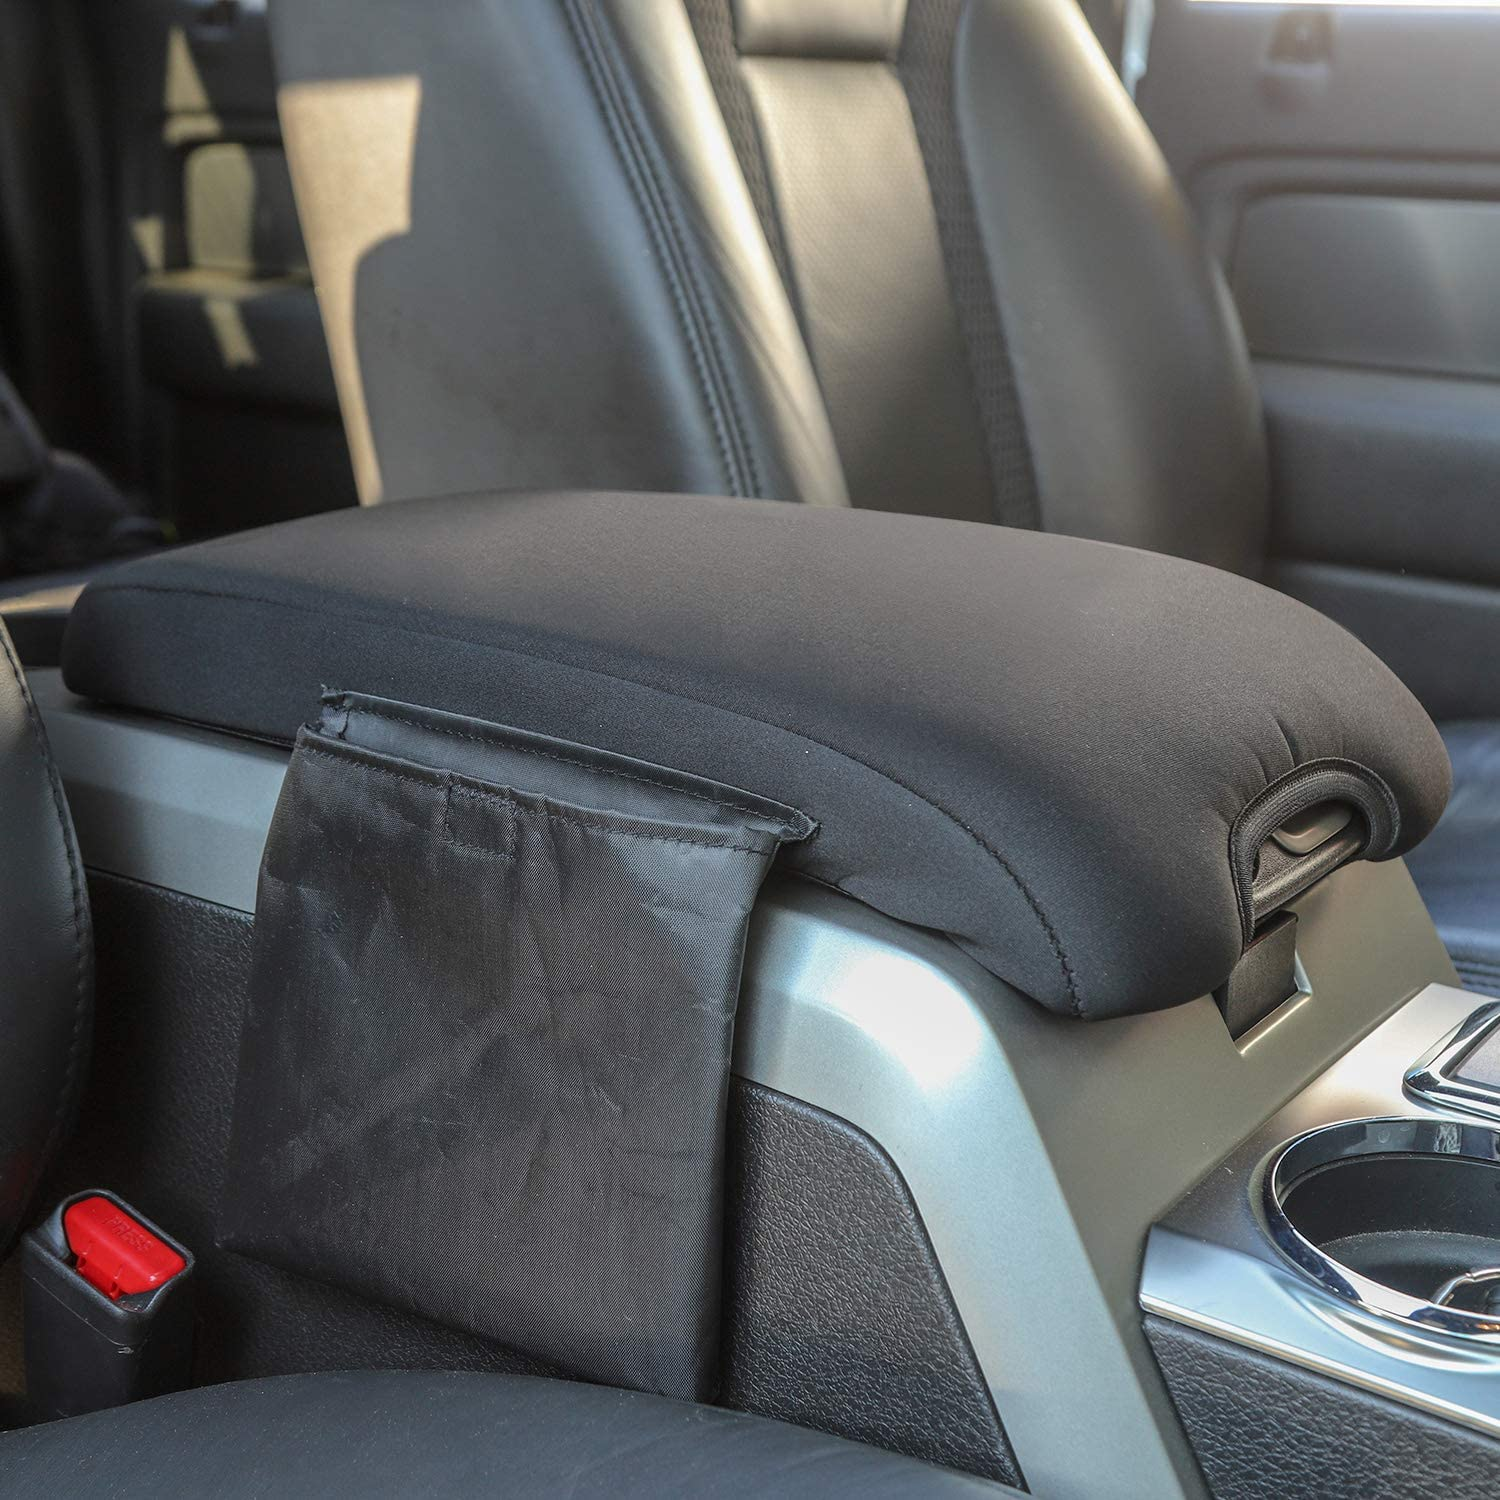 Black Voodonala for F150 Center Console Cover Armrest Pad for 2009-2014 Ford F150